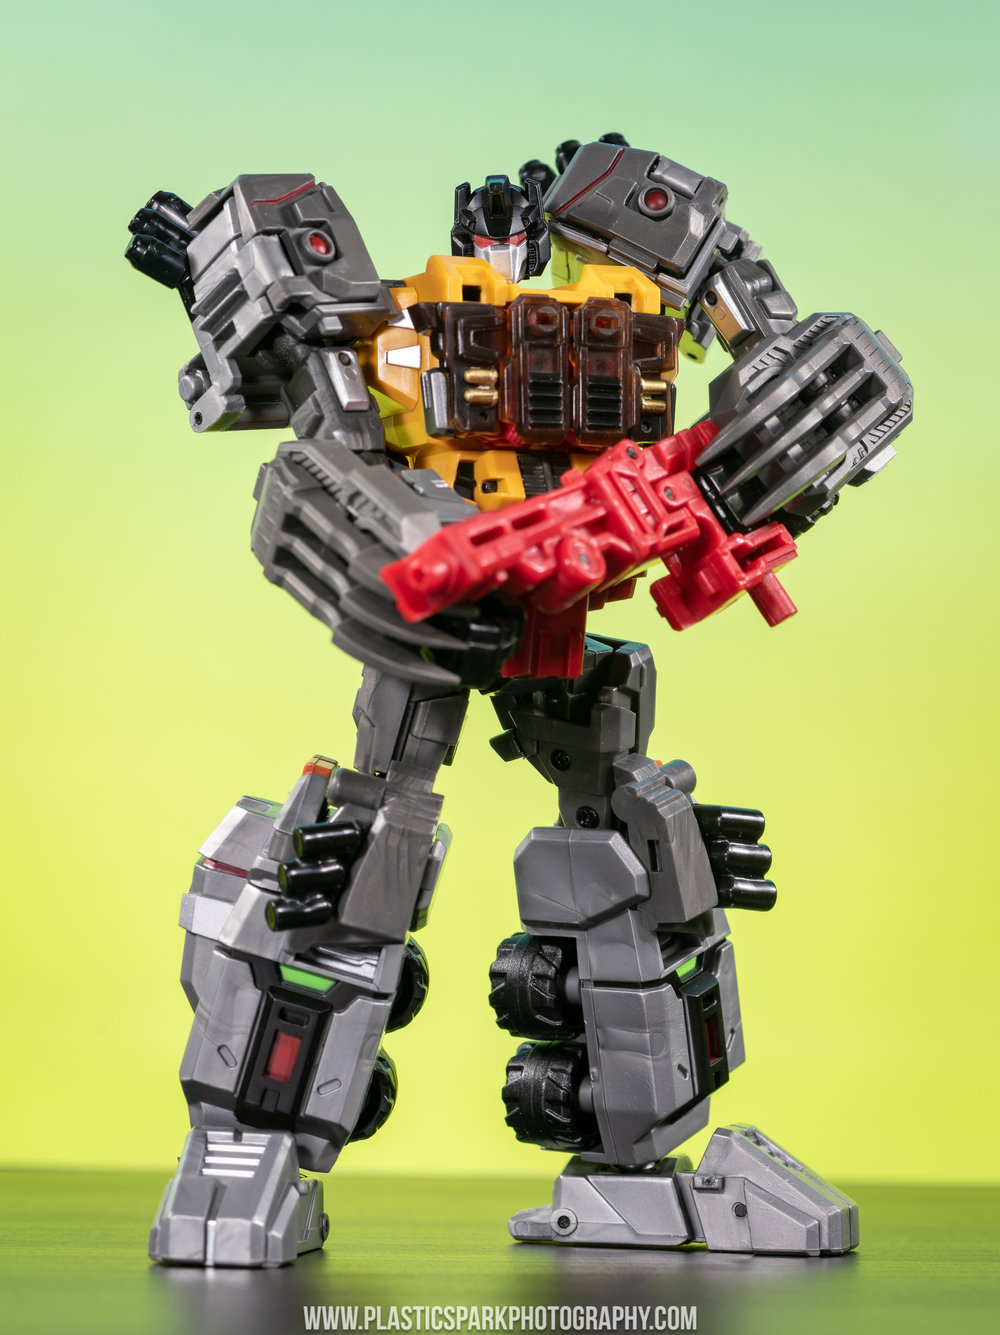 FansProject Severo Core (2 of 14).jpg